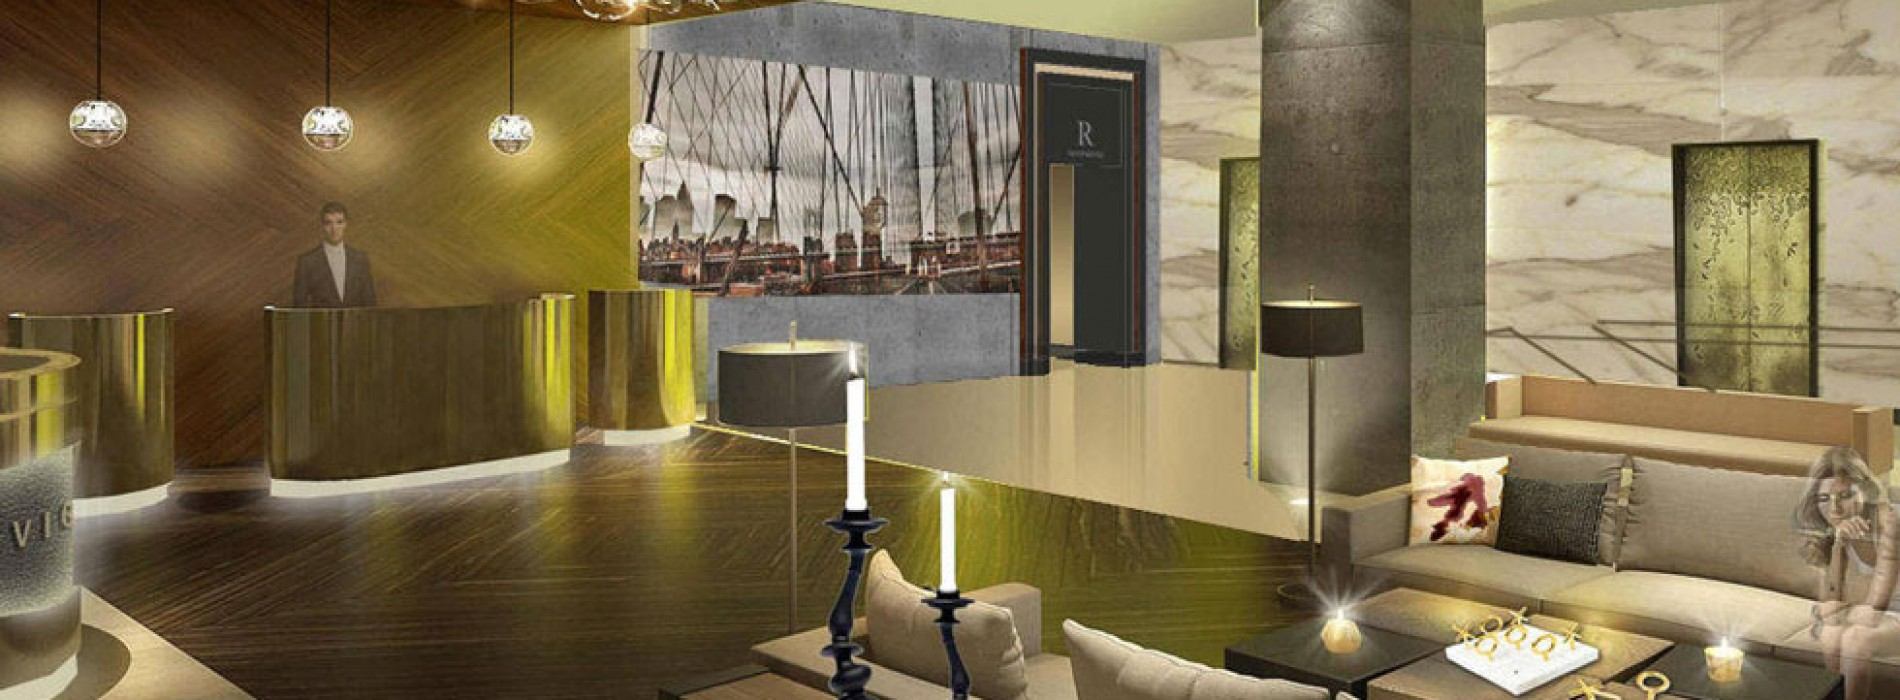 Renaissance New York Midtown Hotel set to open